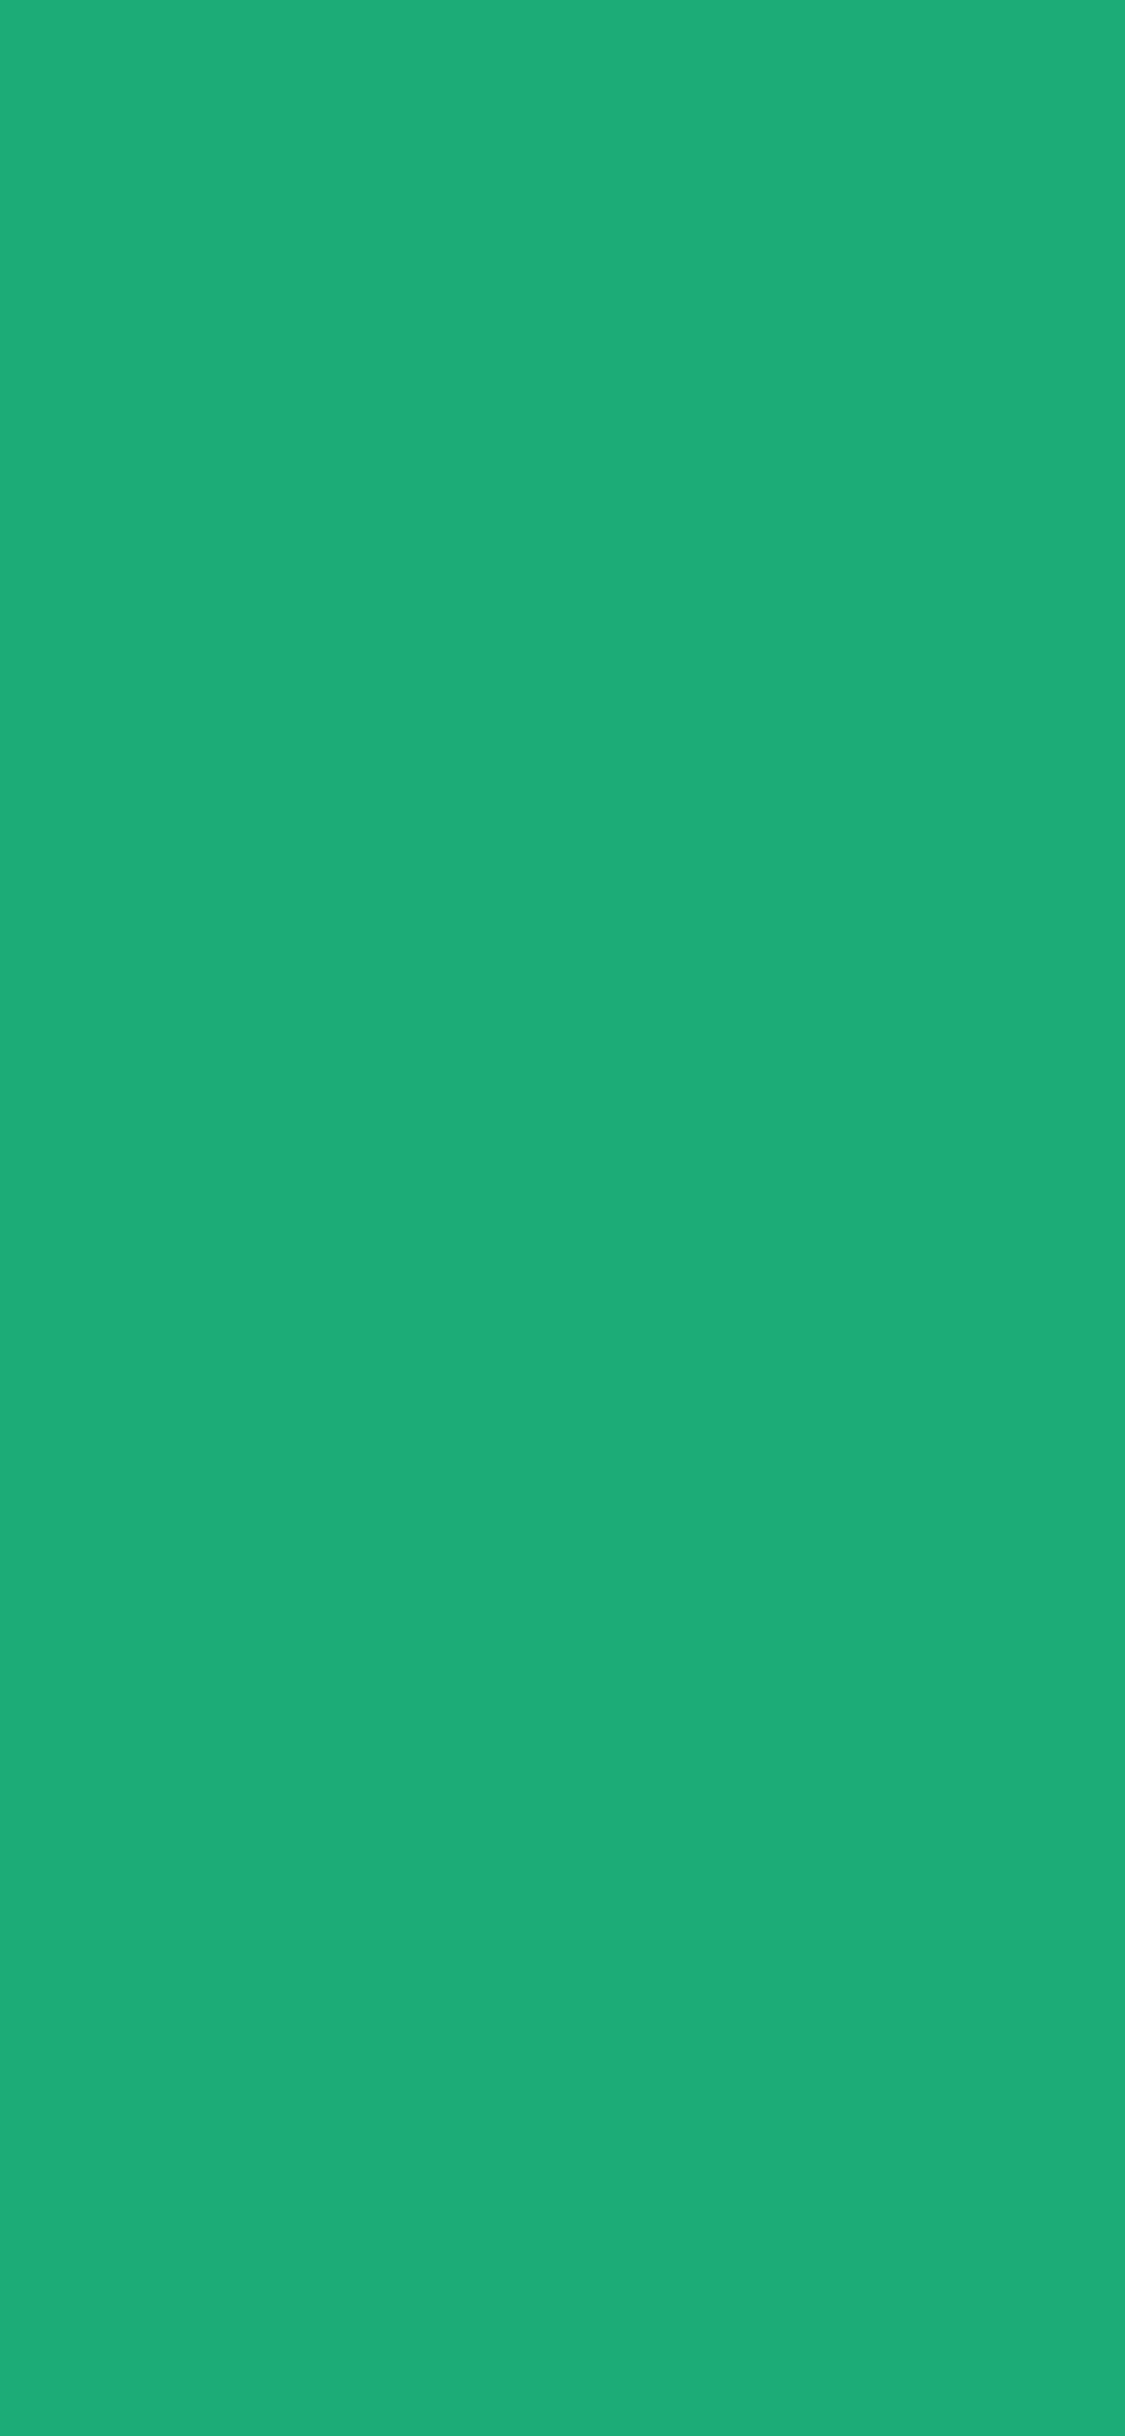 1125x2436 Green Crayola Solid Color Background